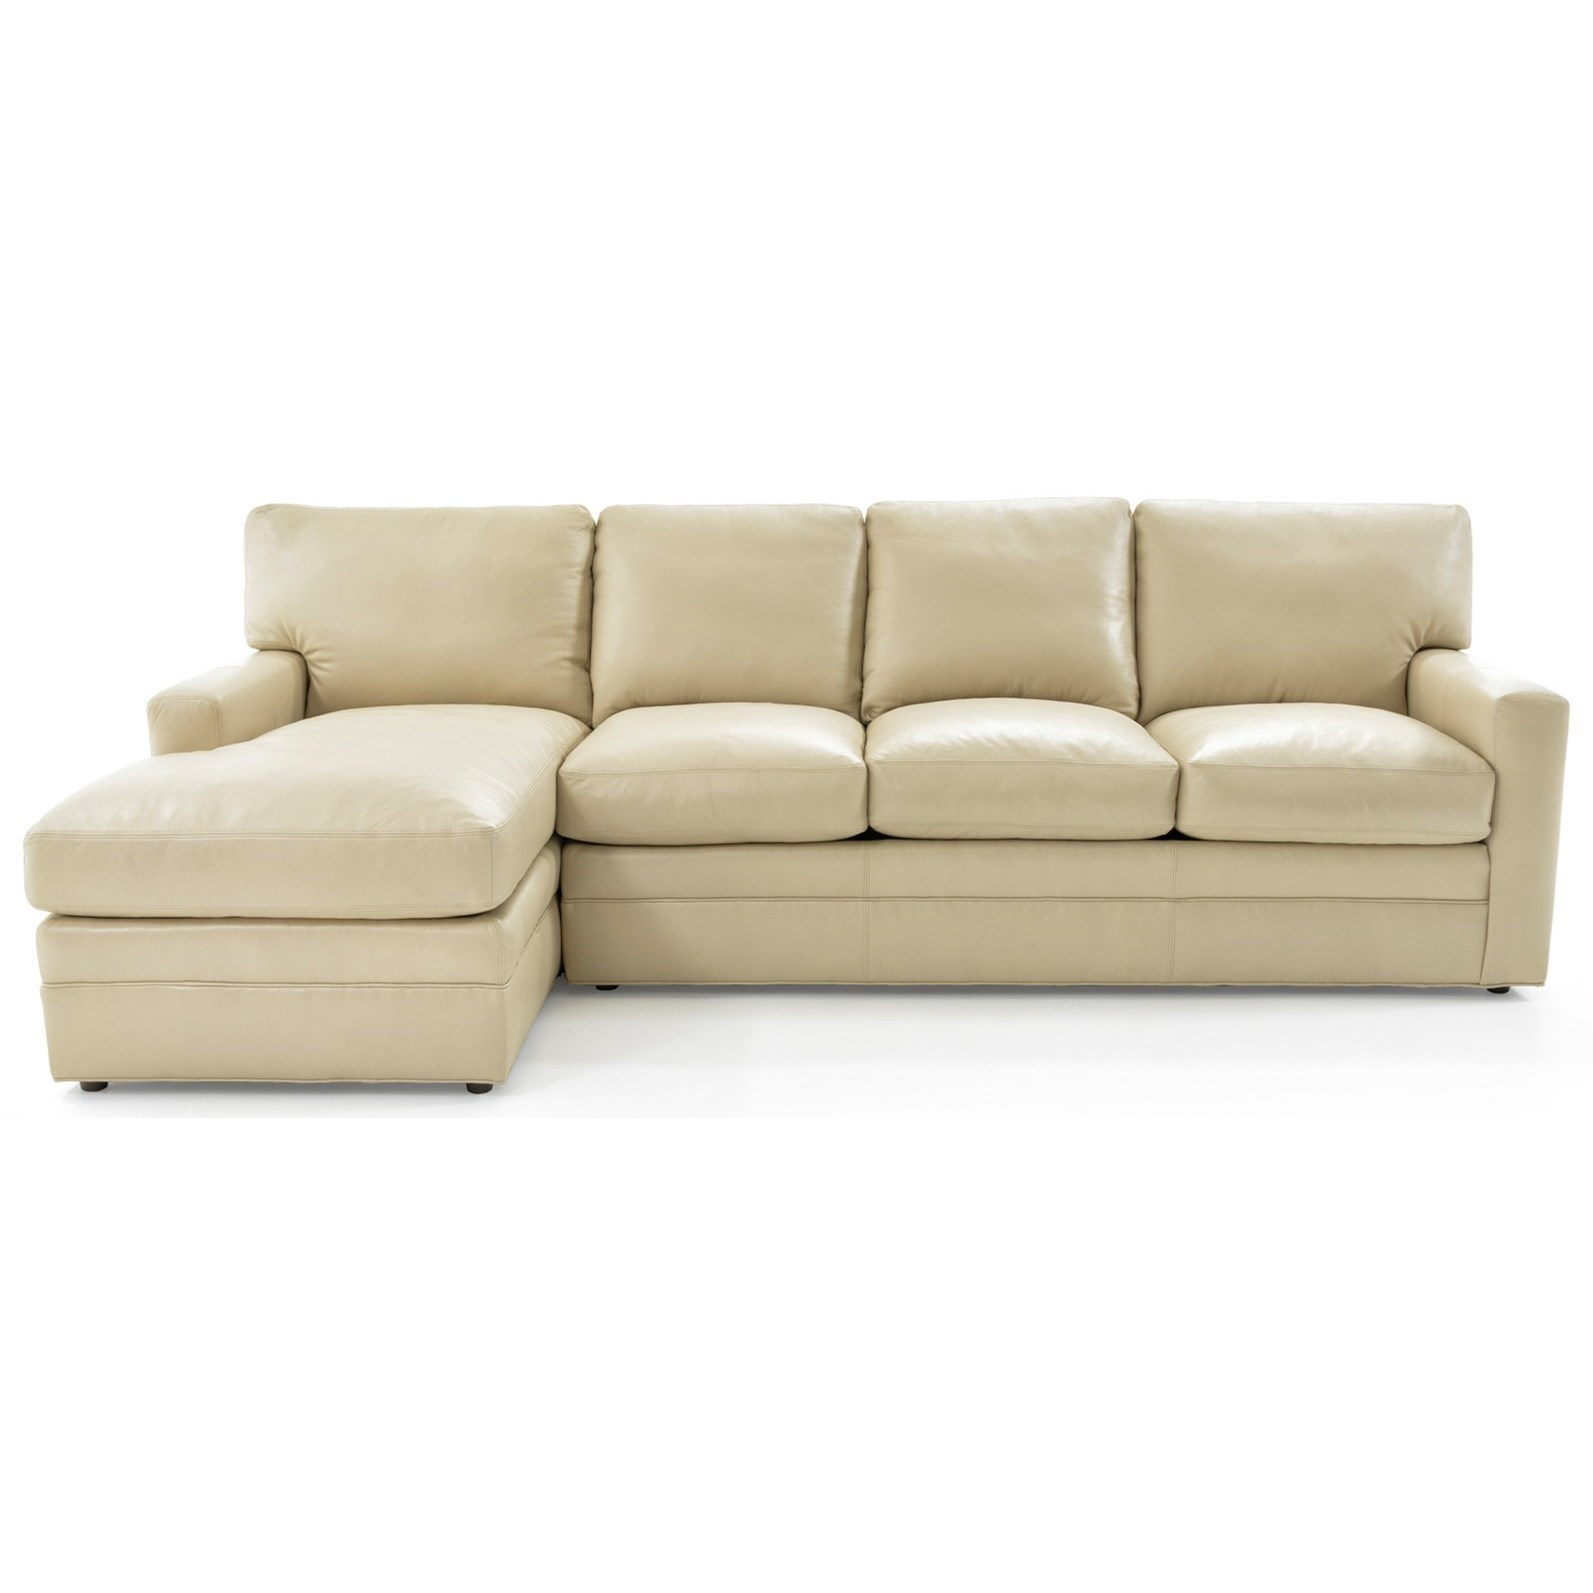 Whittemore Sherrill 442 Two Piece L Shape Sectional Sofa ...